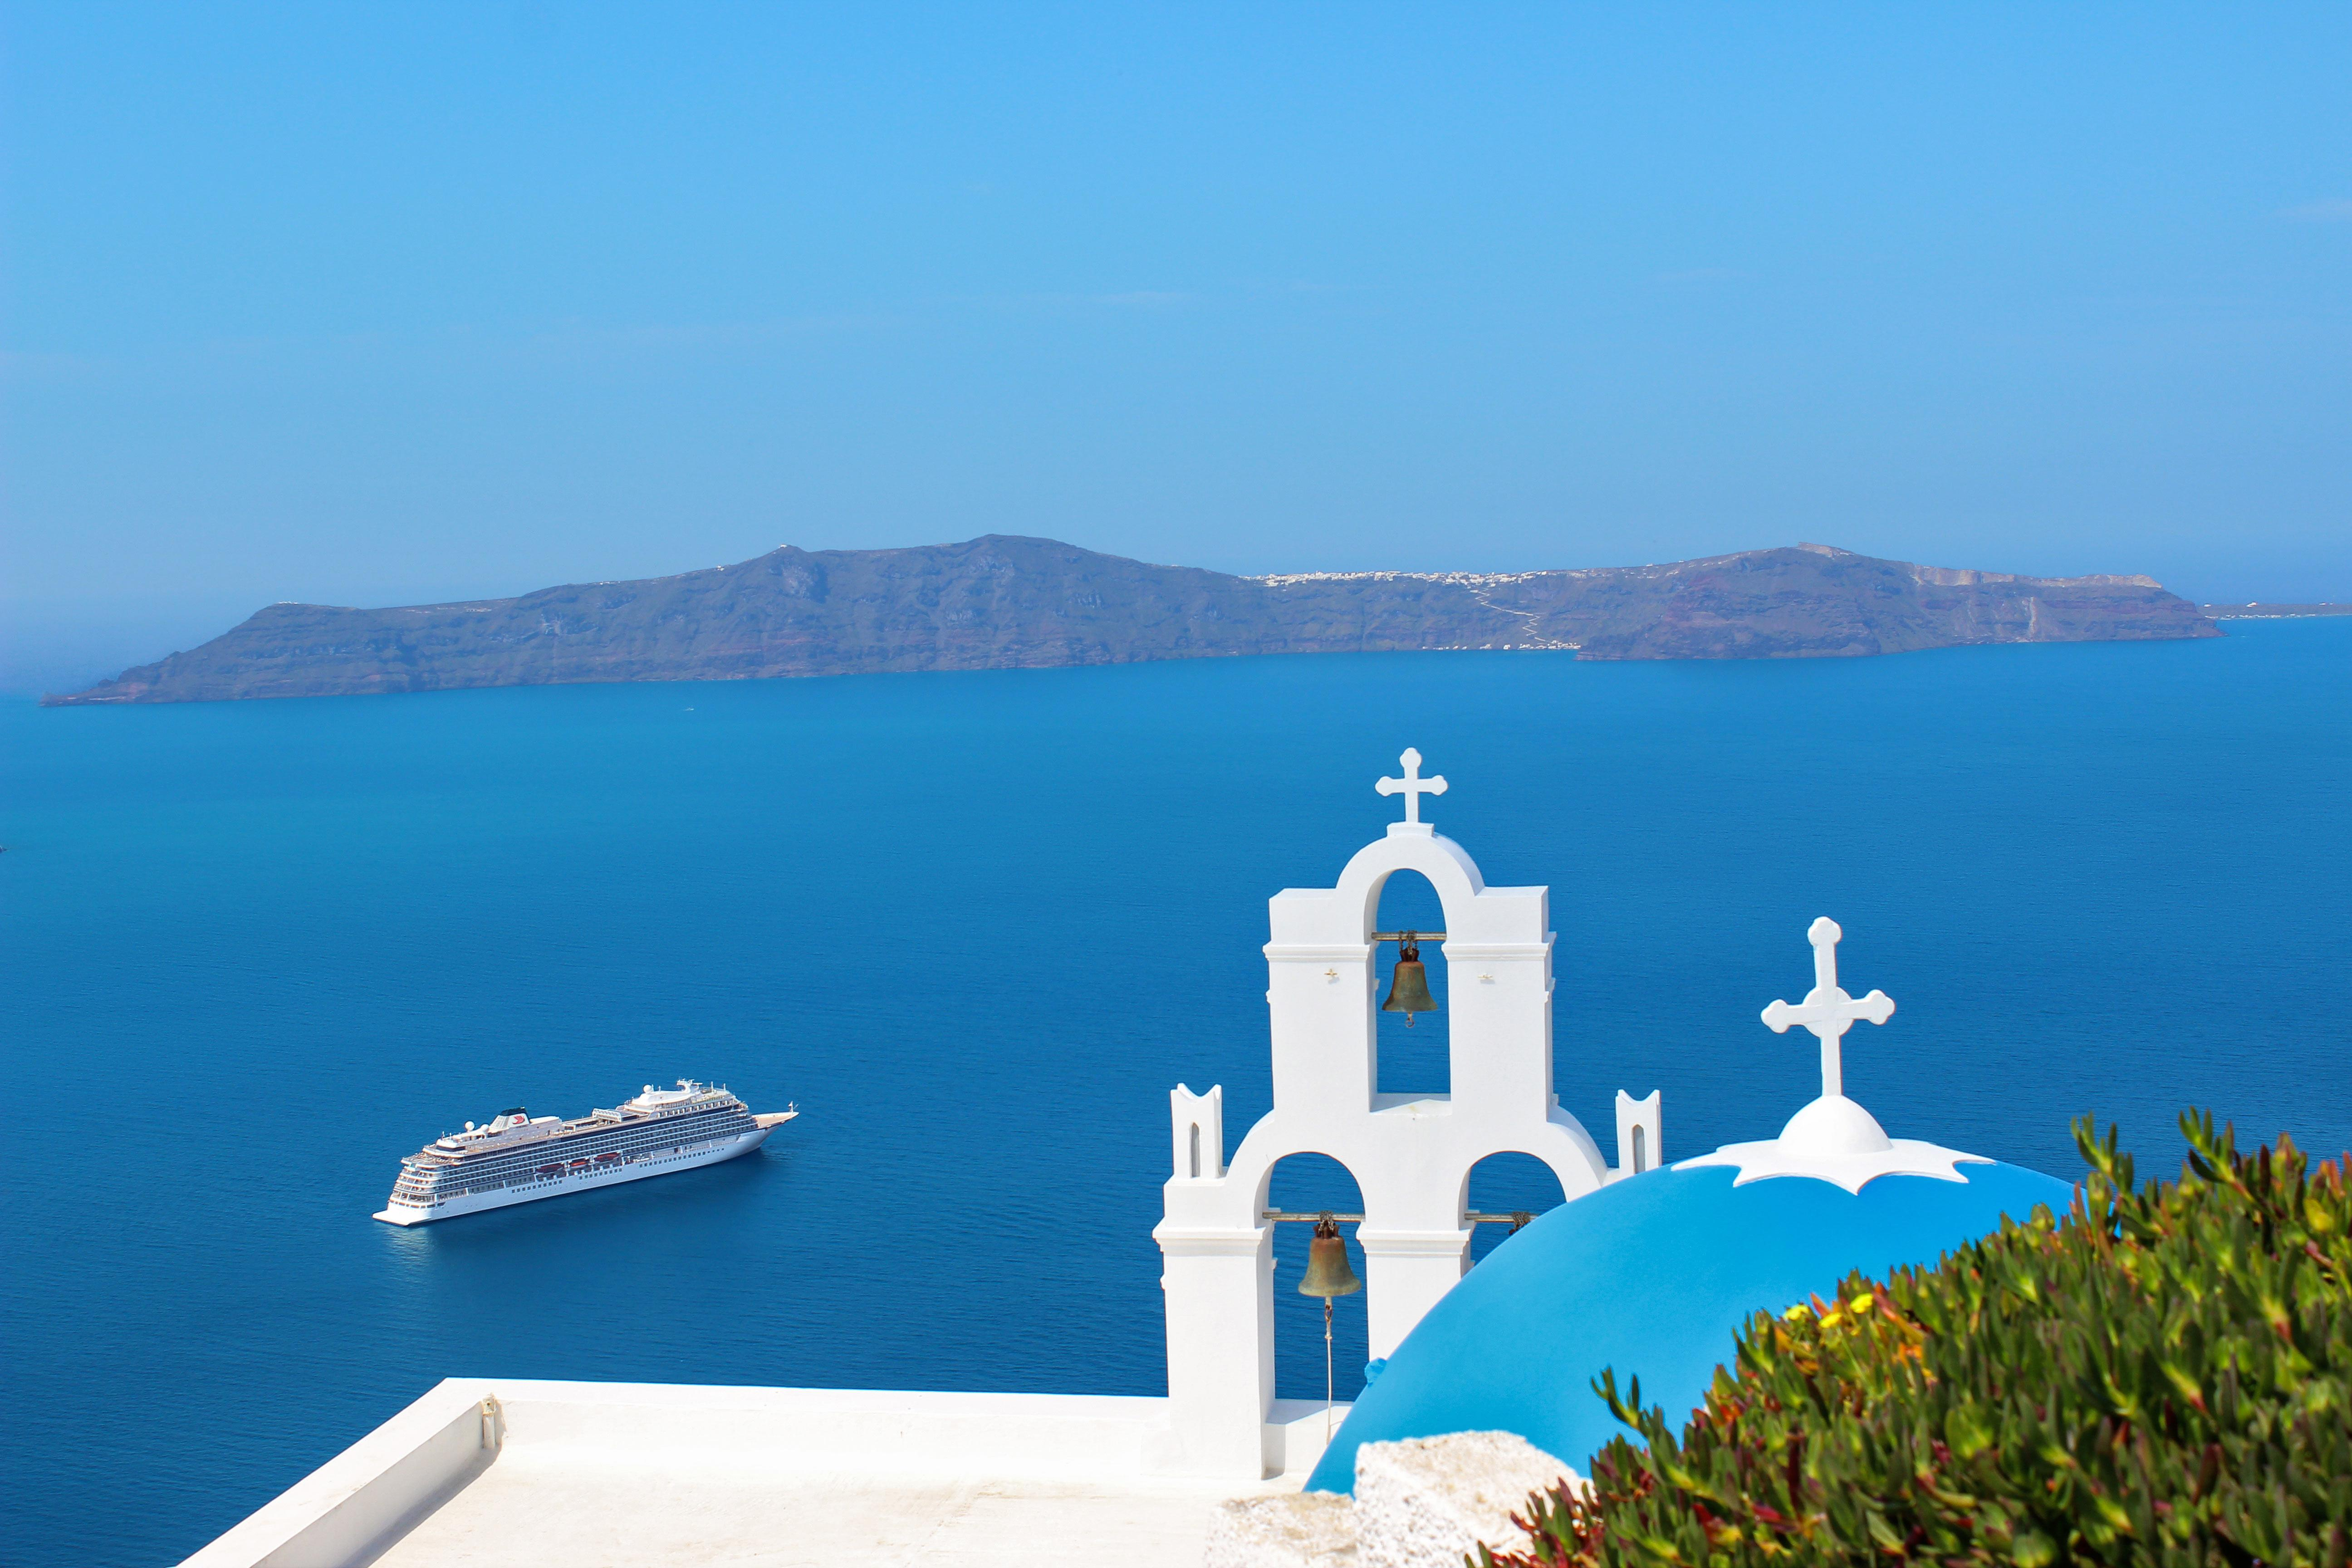 Journey to famed cities and ports like Santorini, Greece with Europe cruises